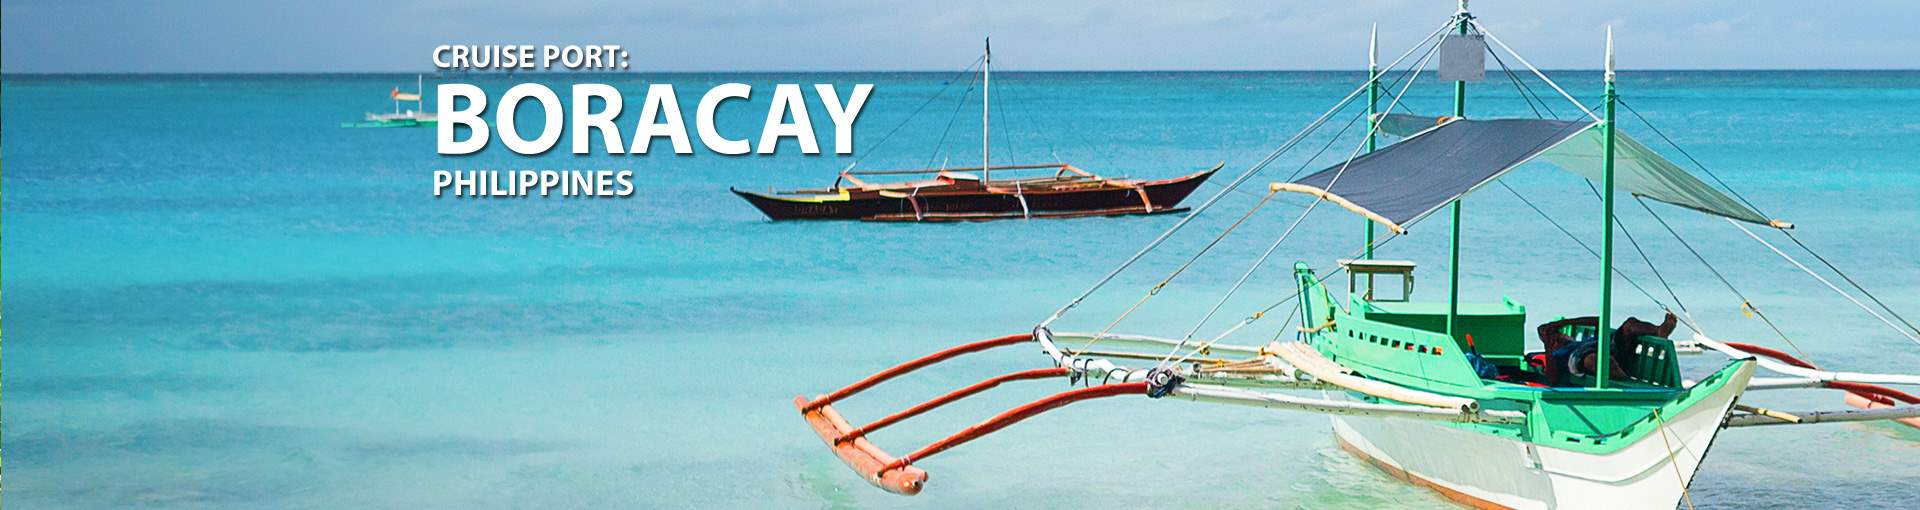 Cruise Port: Boracay, Philippines